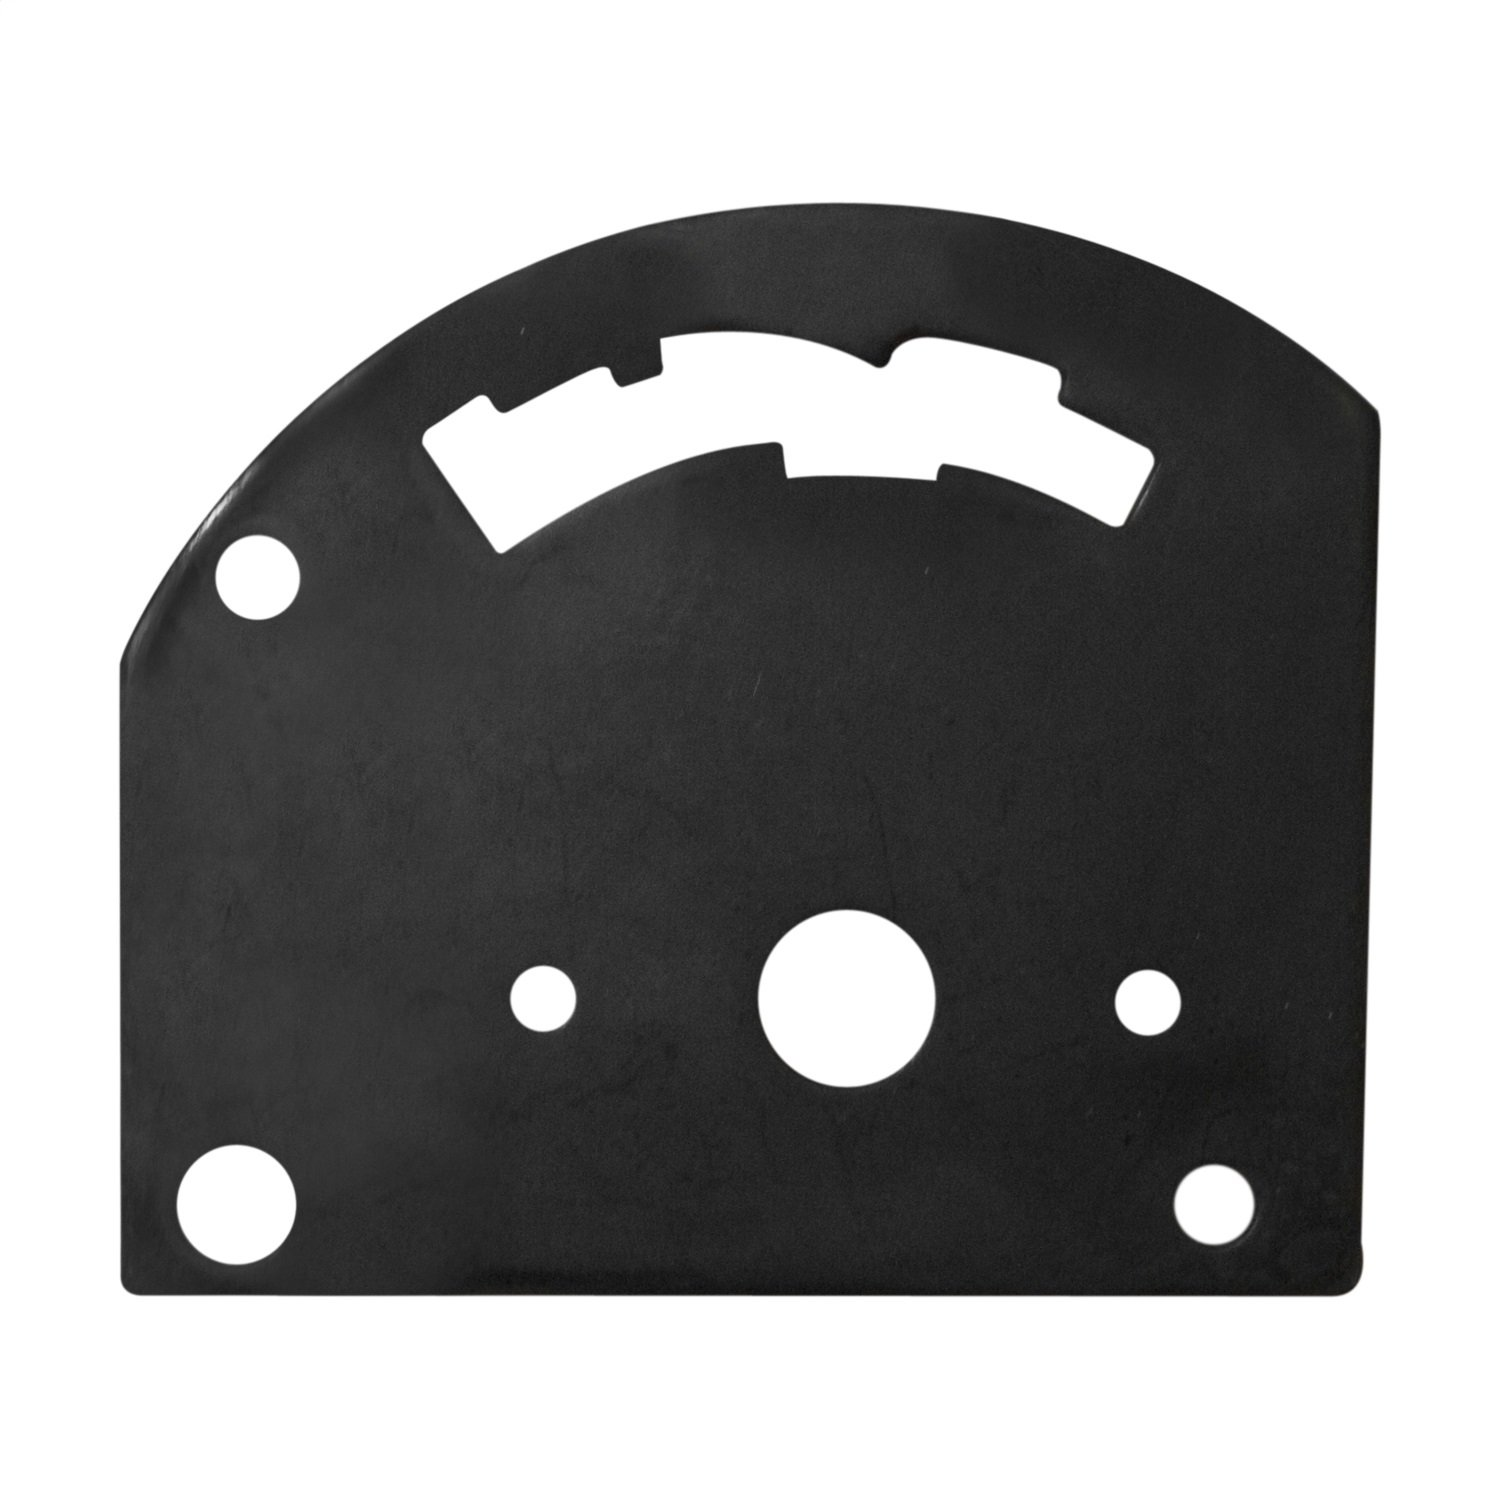 B&M 80710 3-Speed Reverse Pattern Gate Plate for Pro Stick Automatic Shifter by B&M